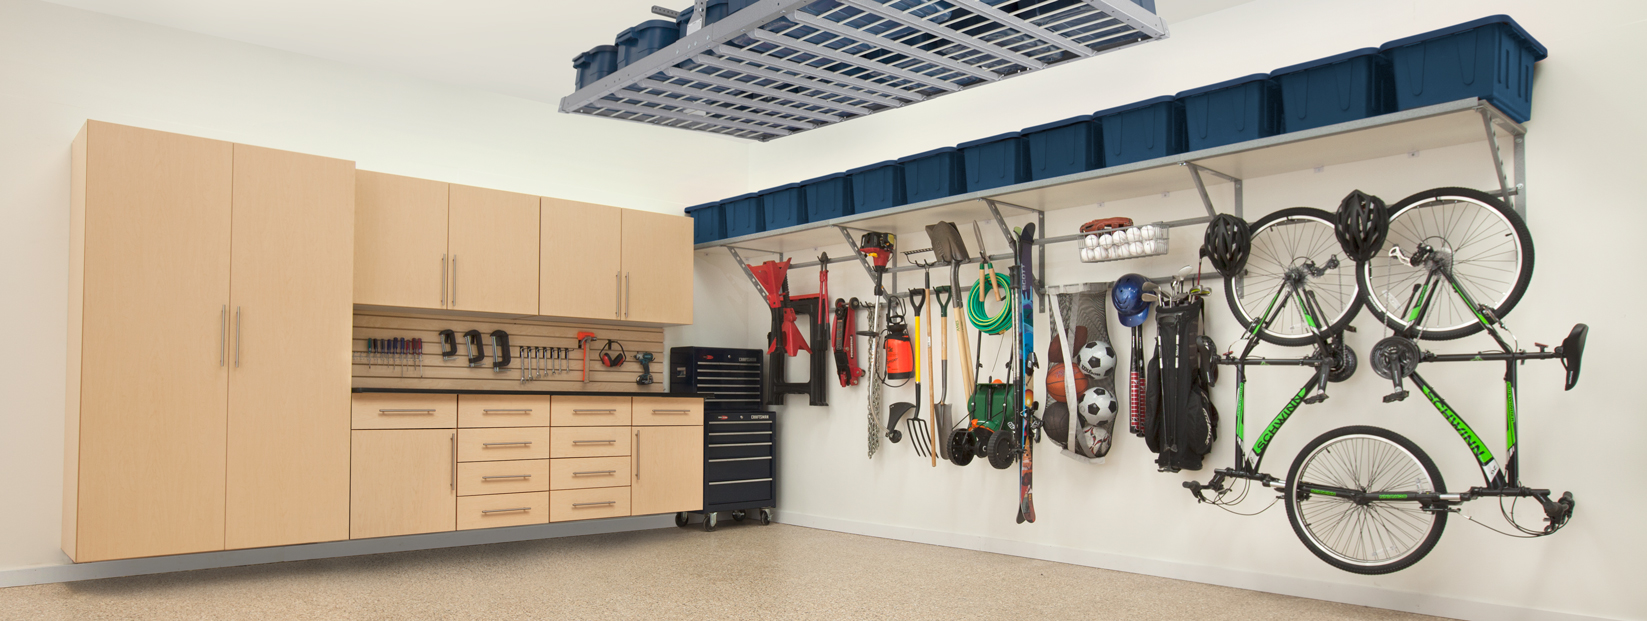 Durable garage storage in Durham